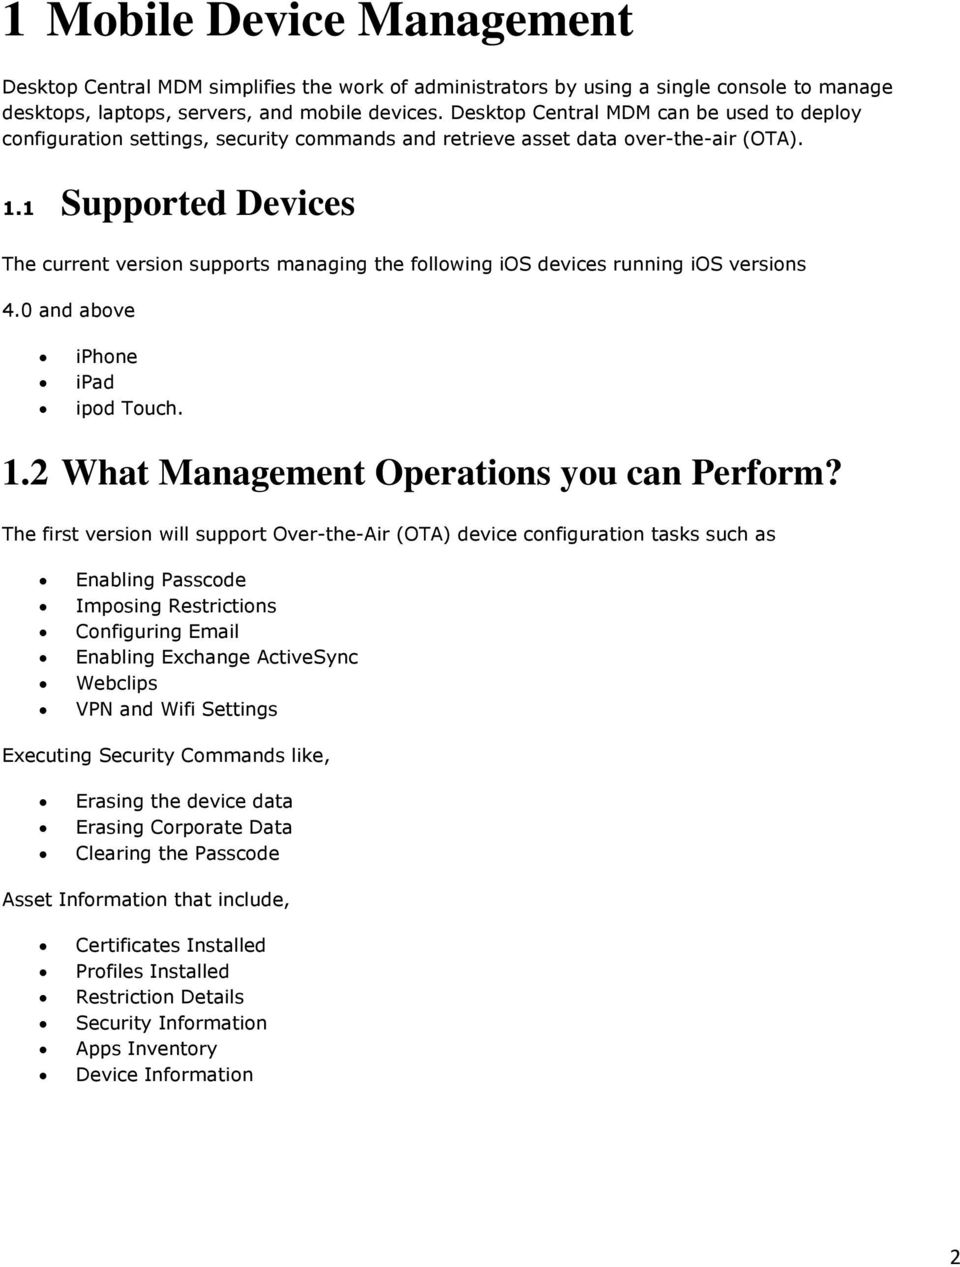 1 Supported Devices The current version supports managing the following ios devices running ios versions 4.0 and above iphone ipad ipod Touch. 1.2 What Management Operations you can Perform?